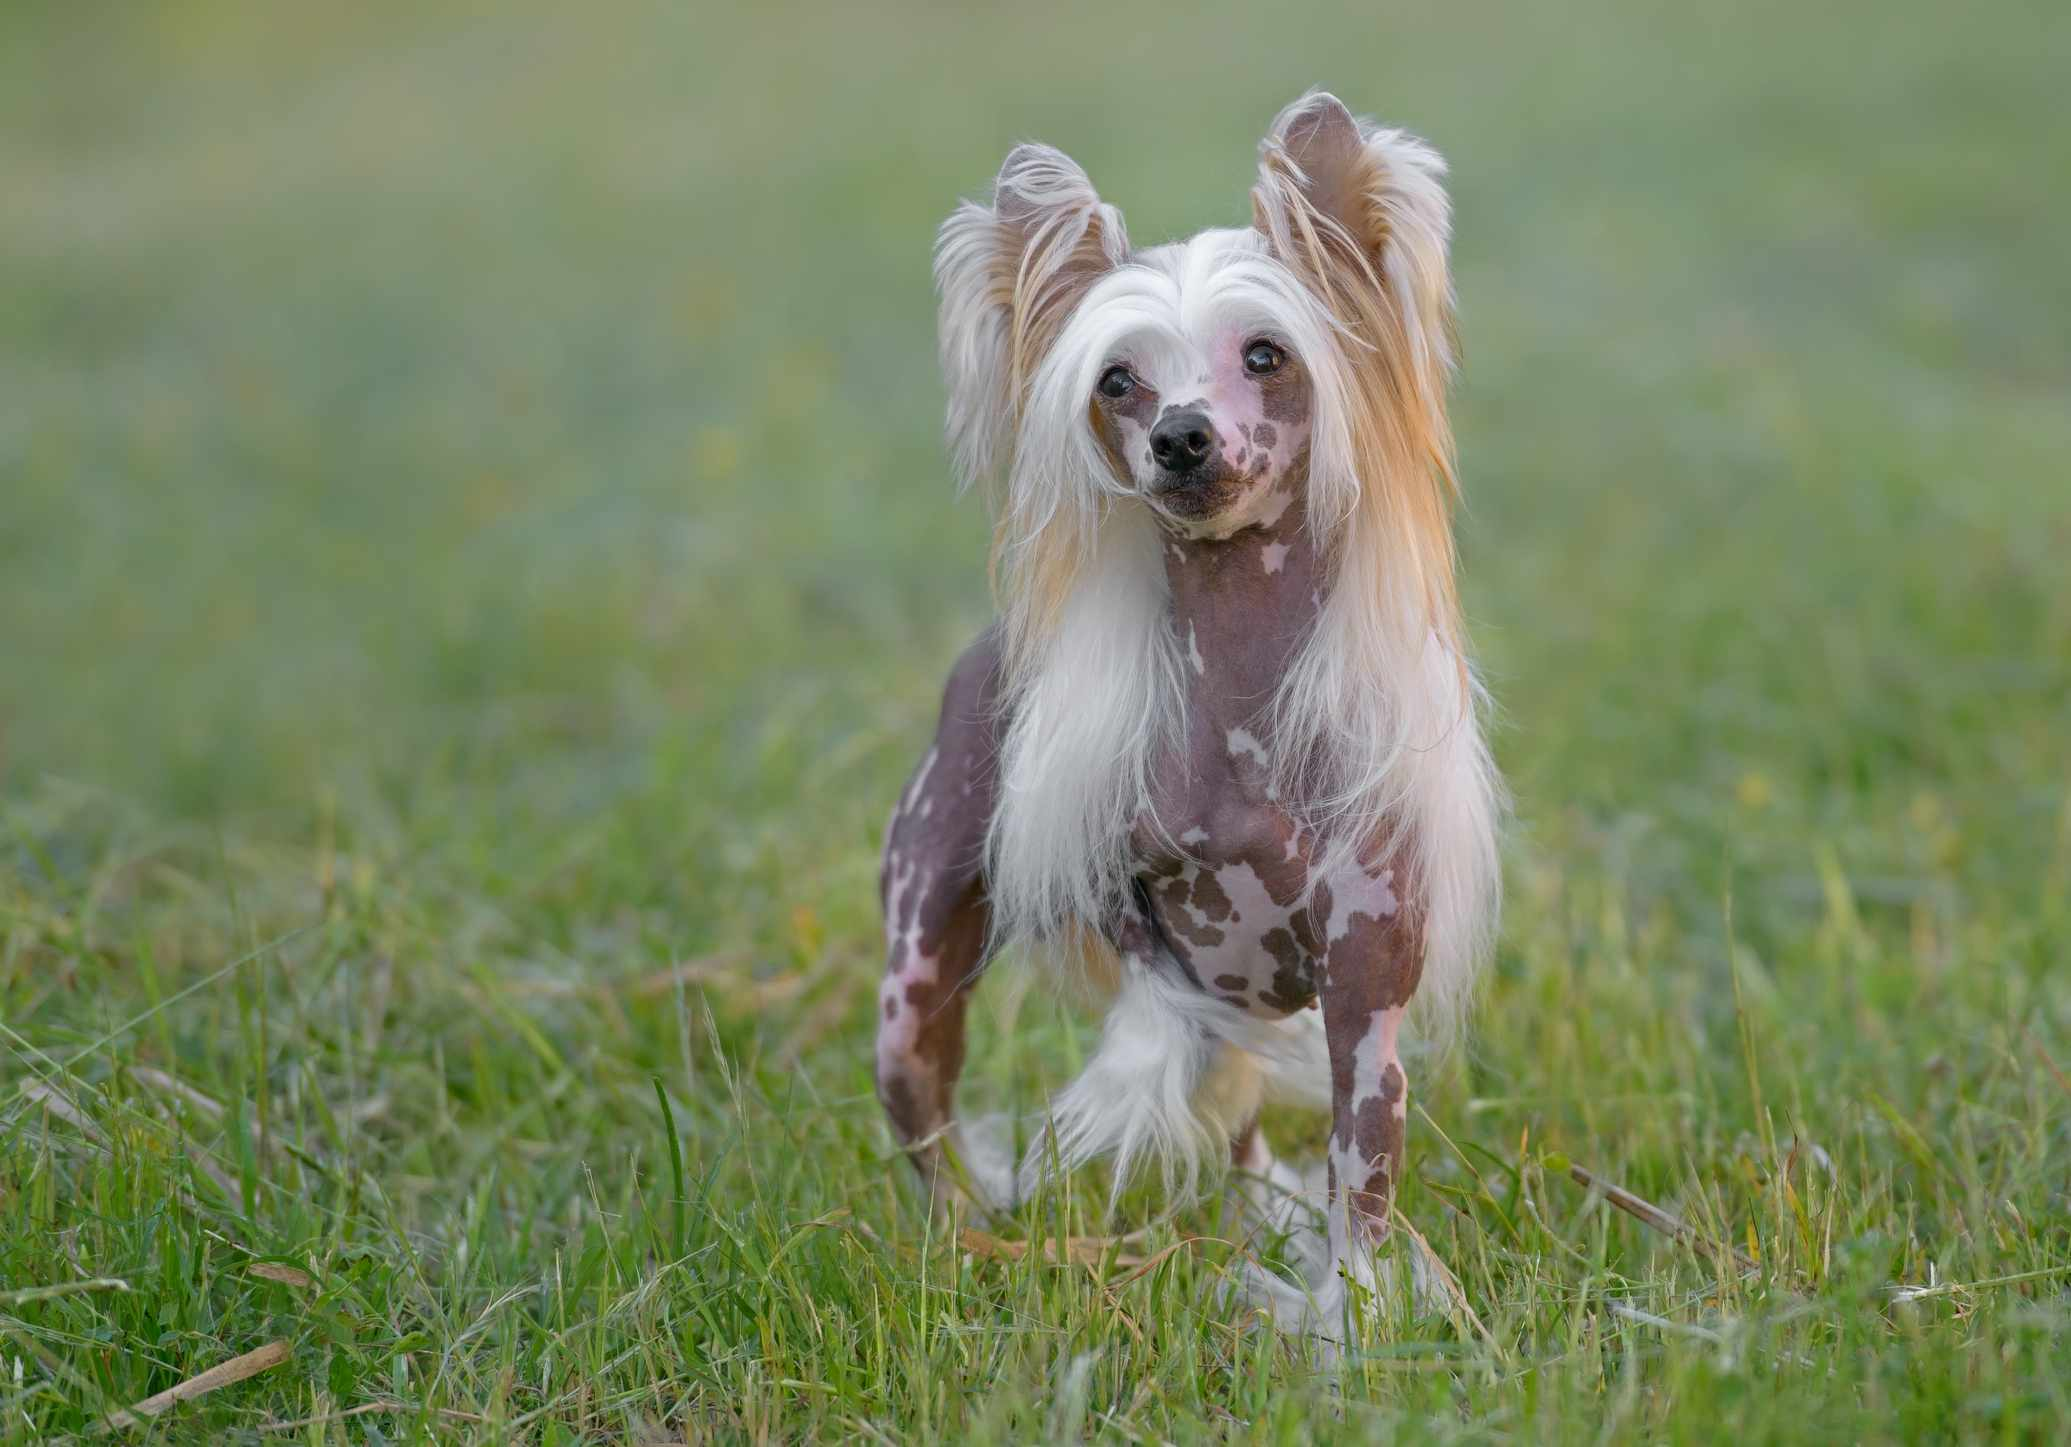 Chinese crested dog with shaved gray body and long hair on ears, standing in field